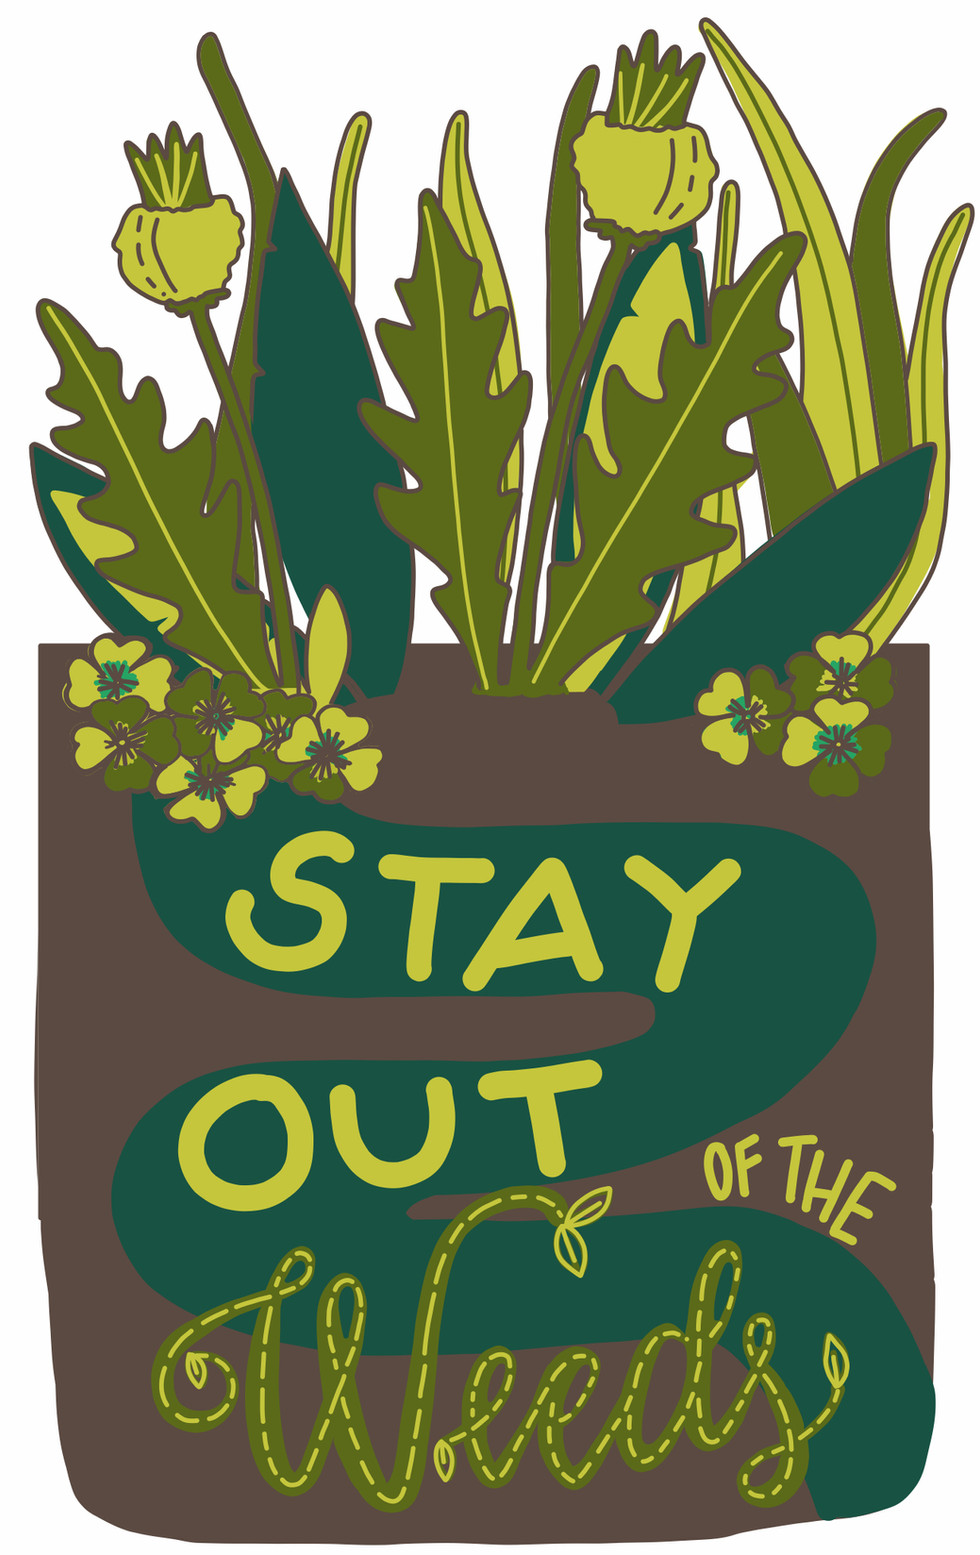 Stay Out of the Weeds